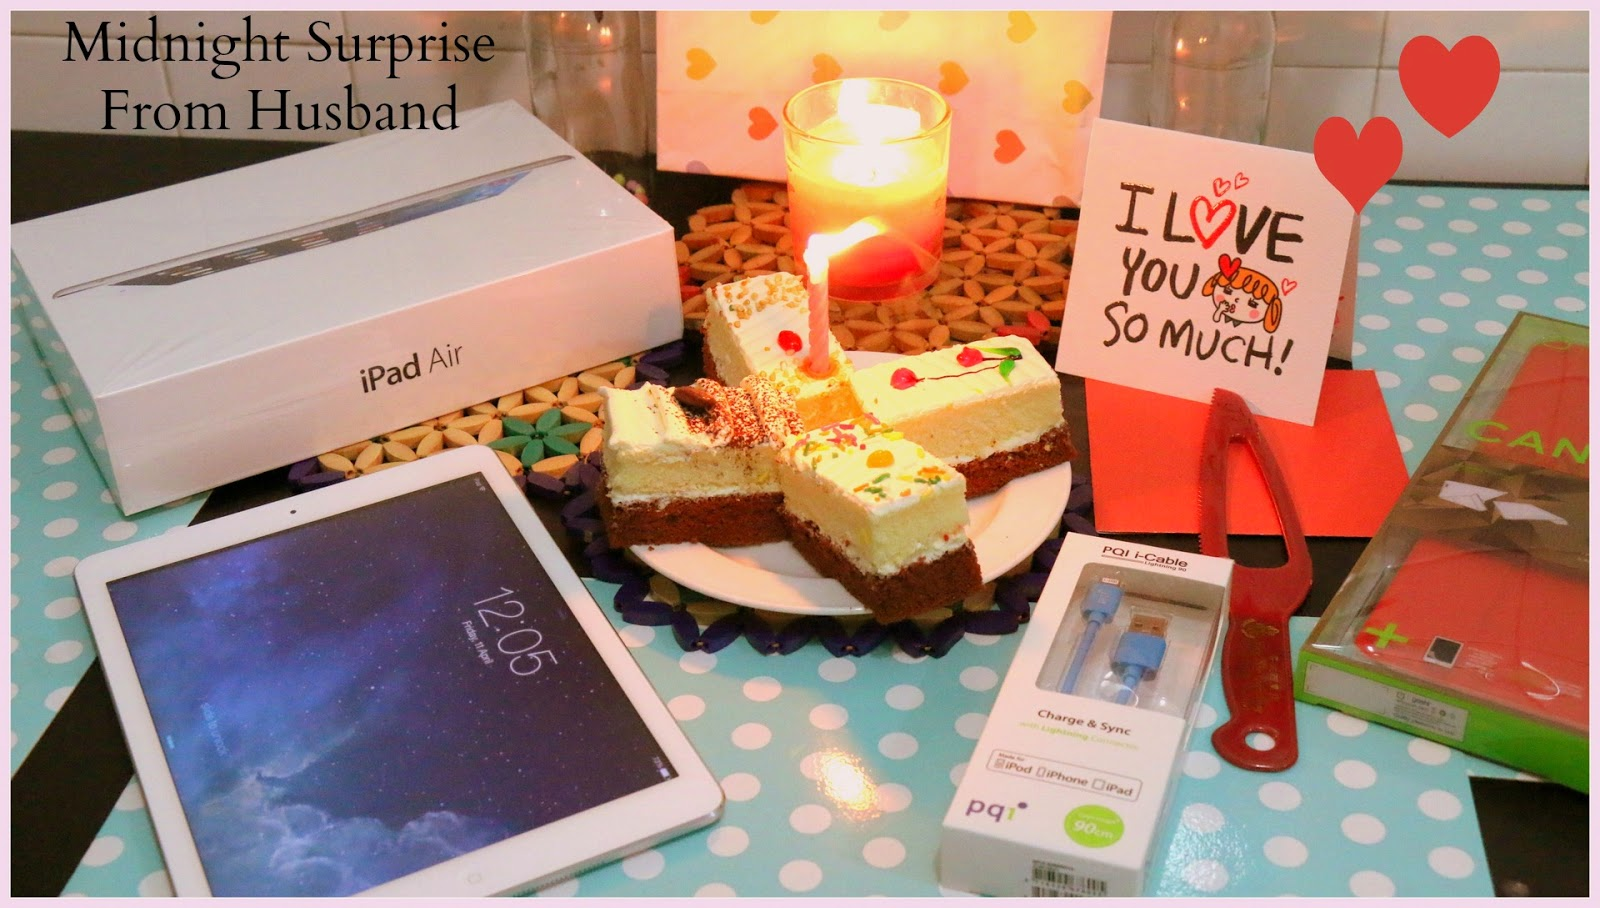 Wedding Anniversary Surprise Ideas For Husband